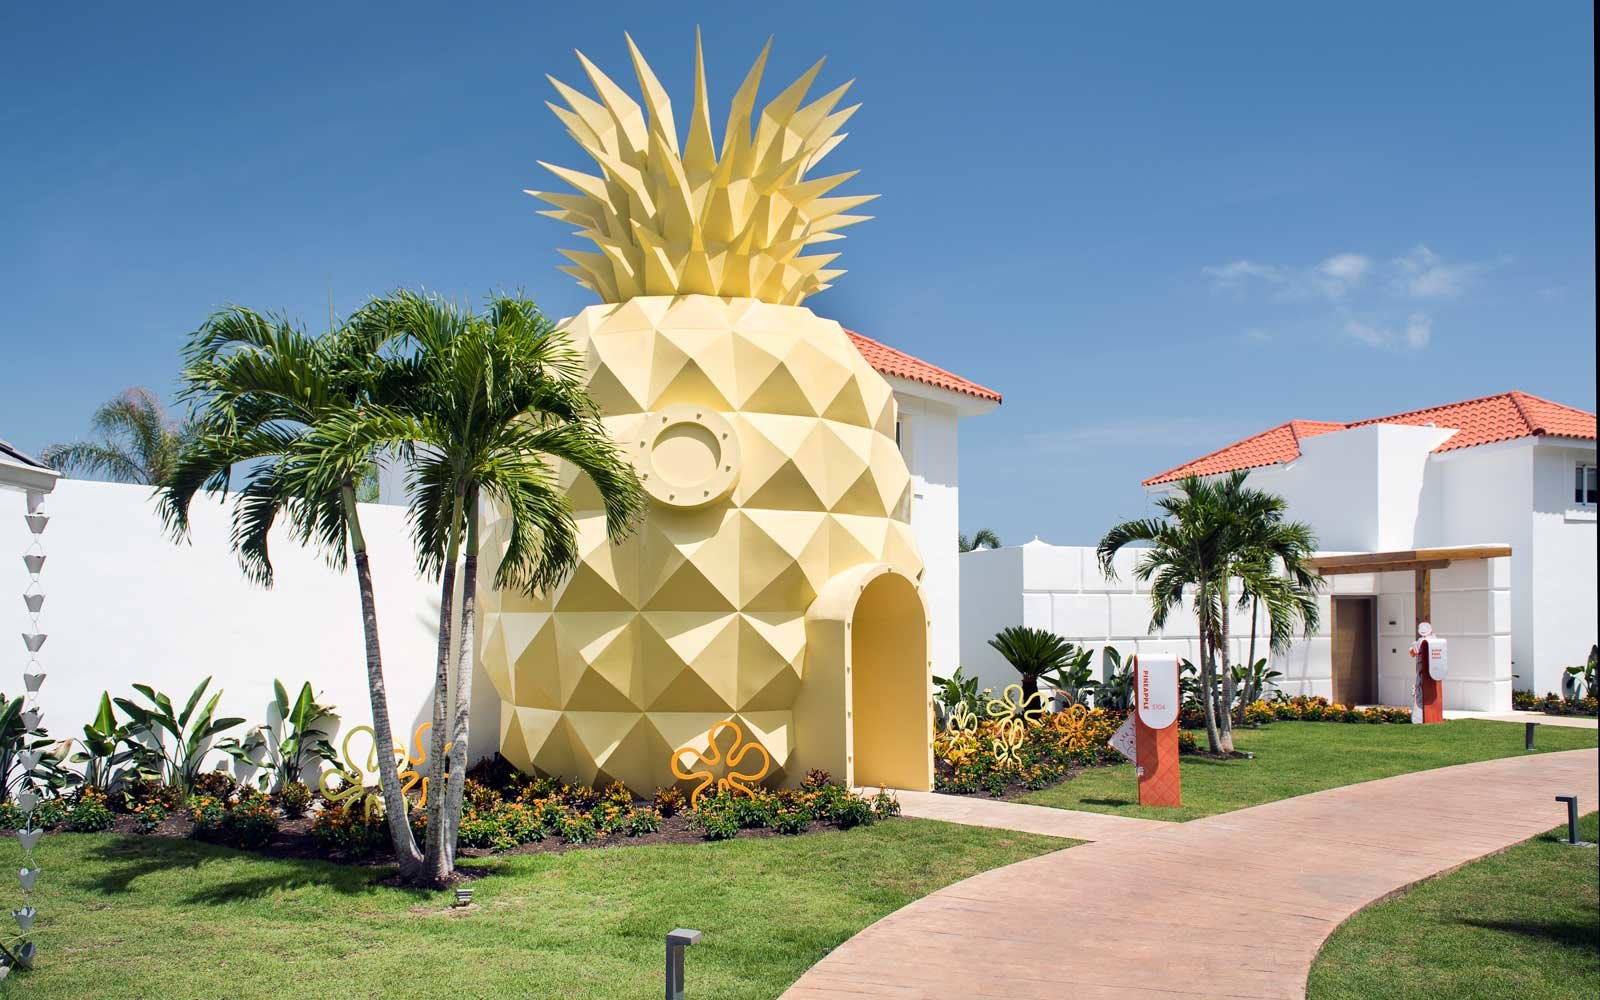 Pineapple suite at the Nickelodeon Resort in Punta Cana